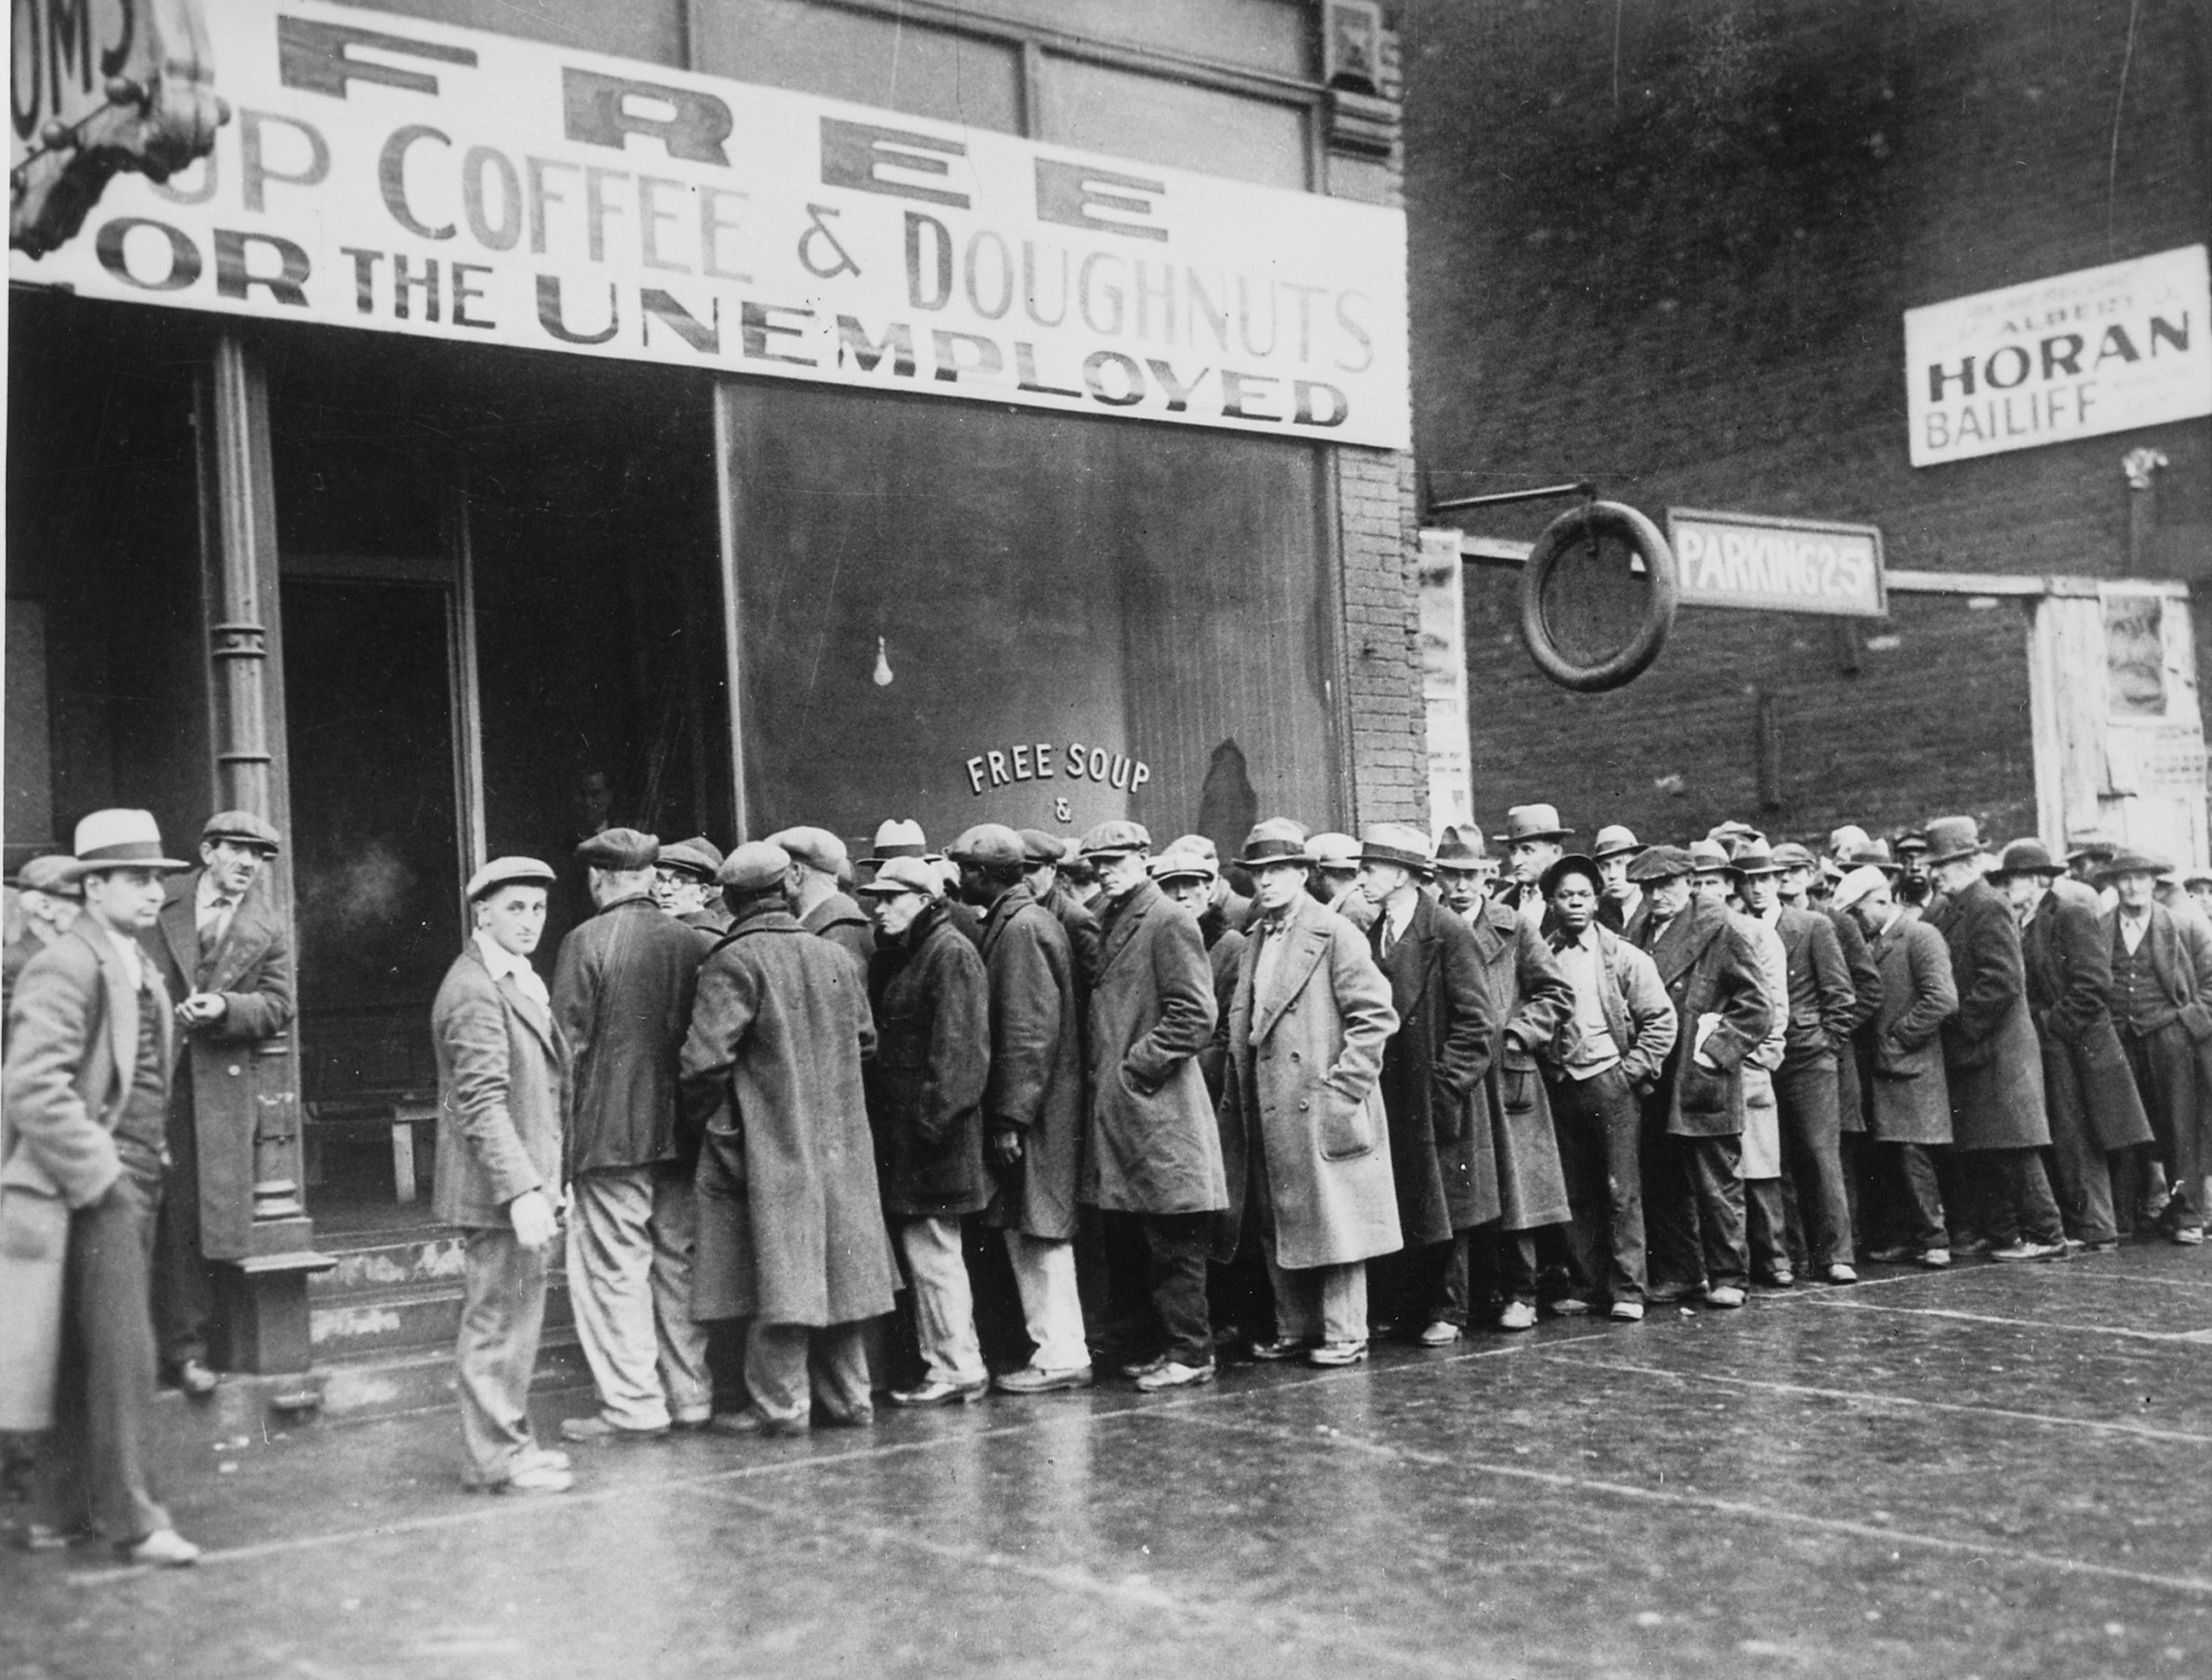 Overlooked Crisis: The Postwar Collapse of Work for American Men